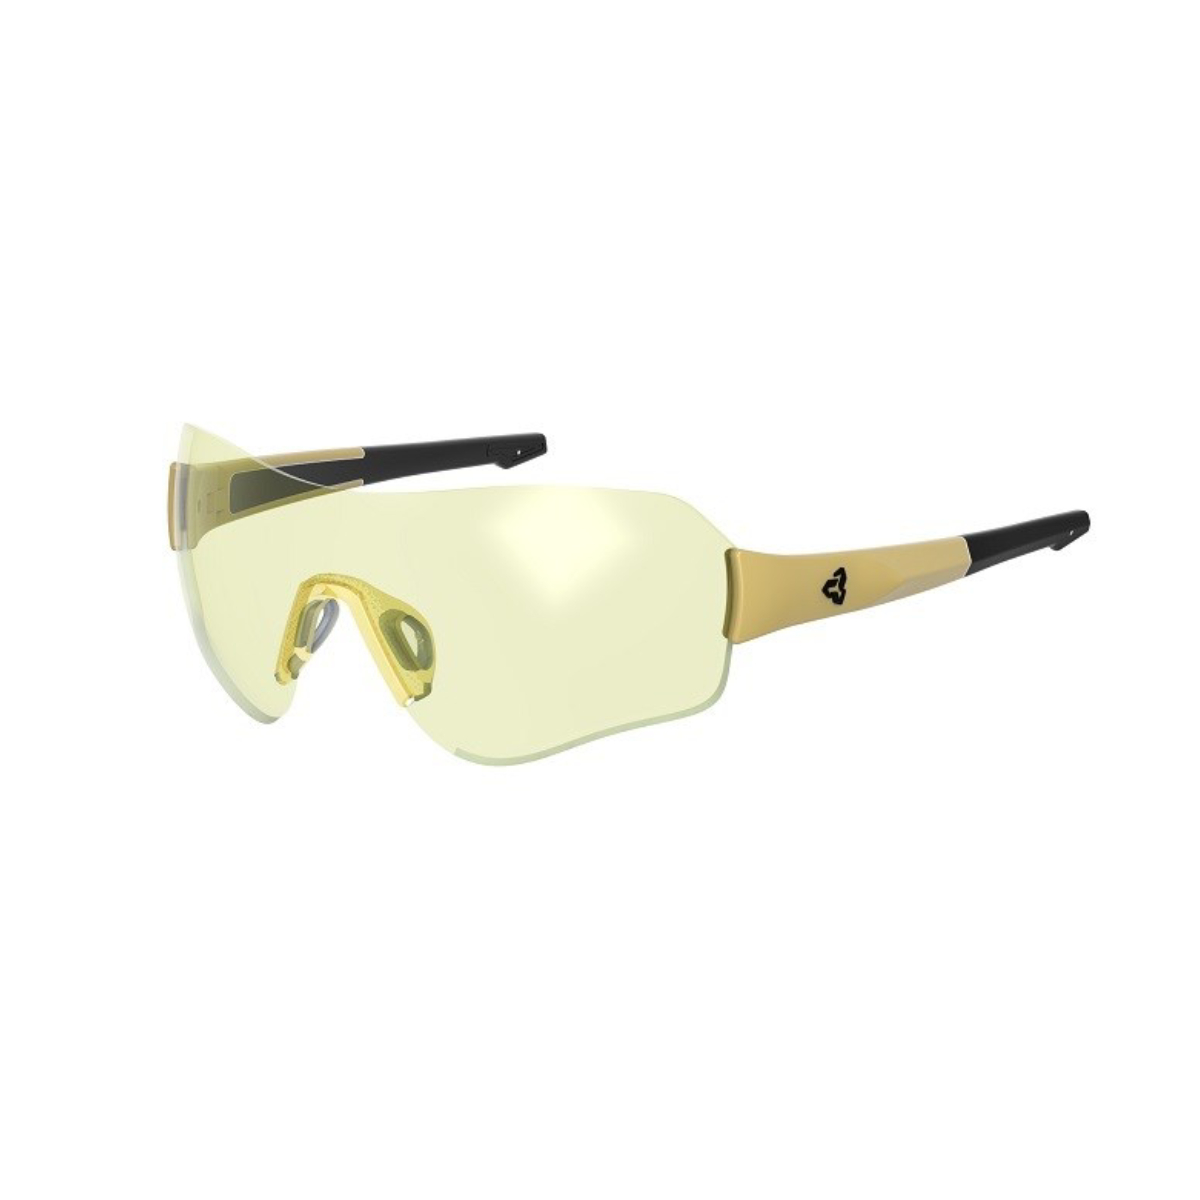 LUNETTE RYDERS FITZ POLY OR METALIC MT LENTILLE JAUNE ANIT BUEE